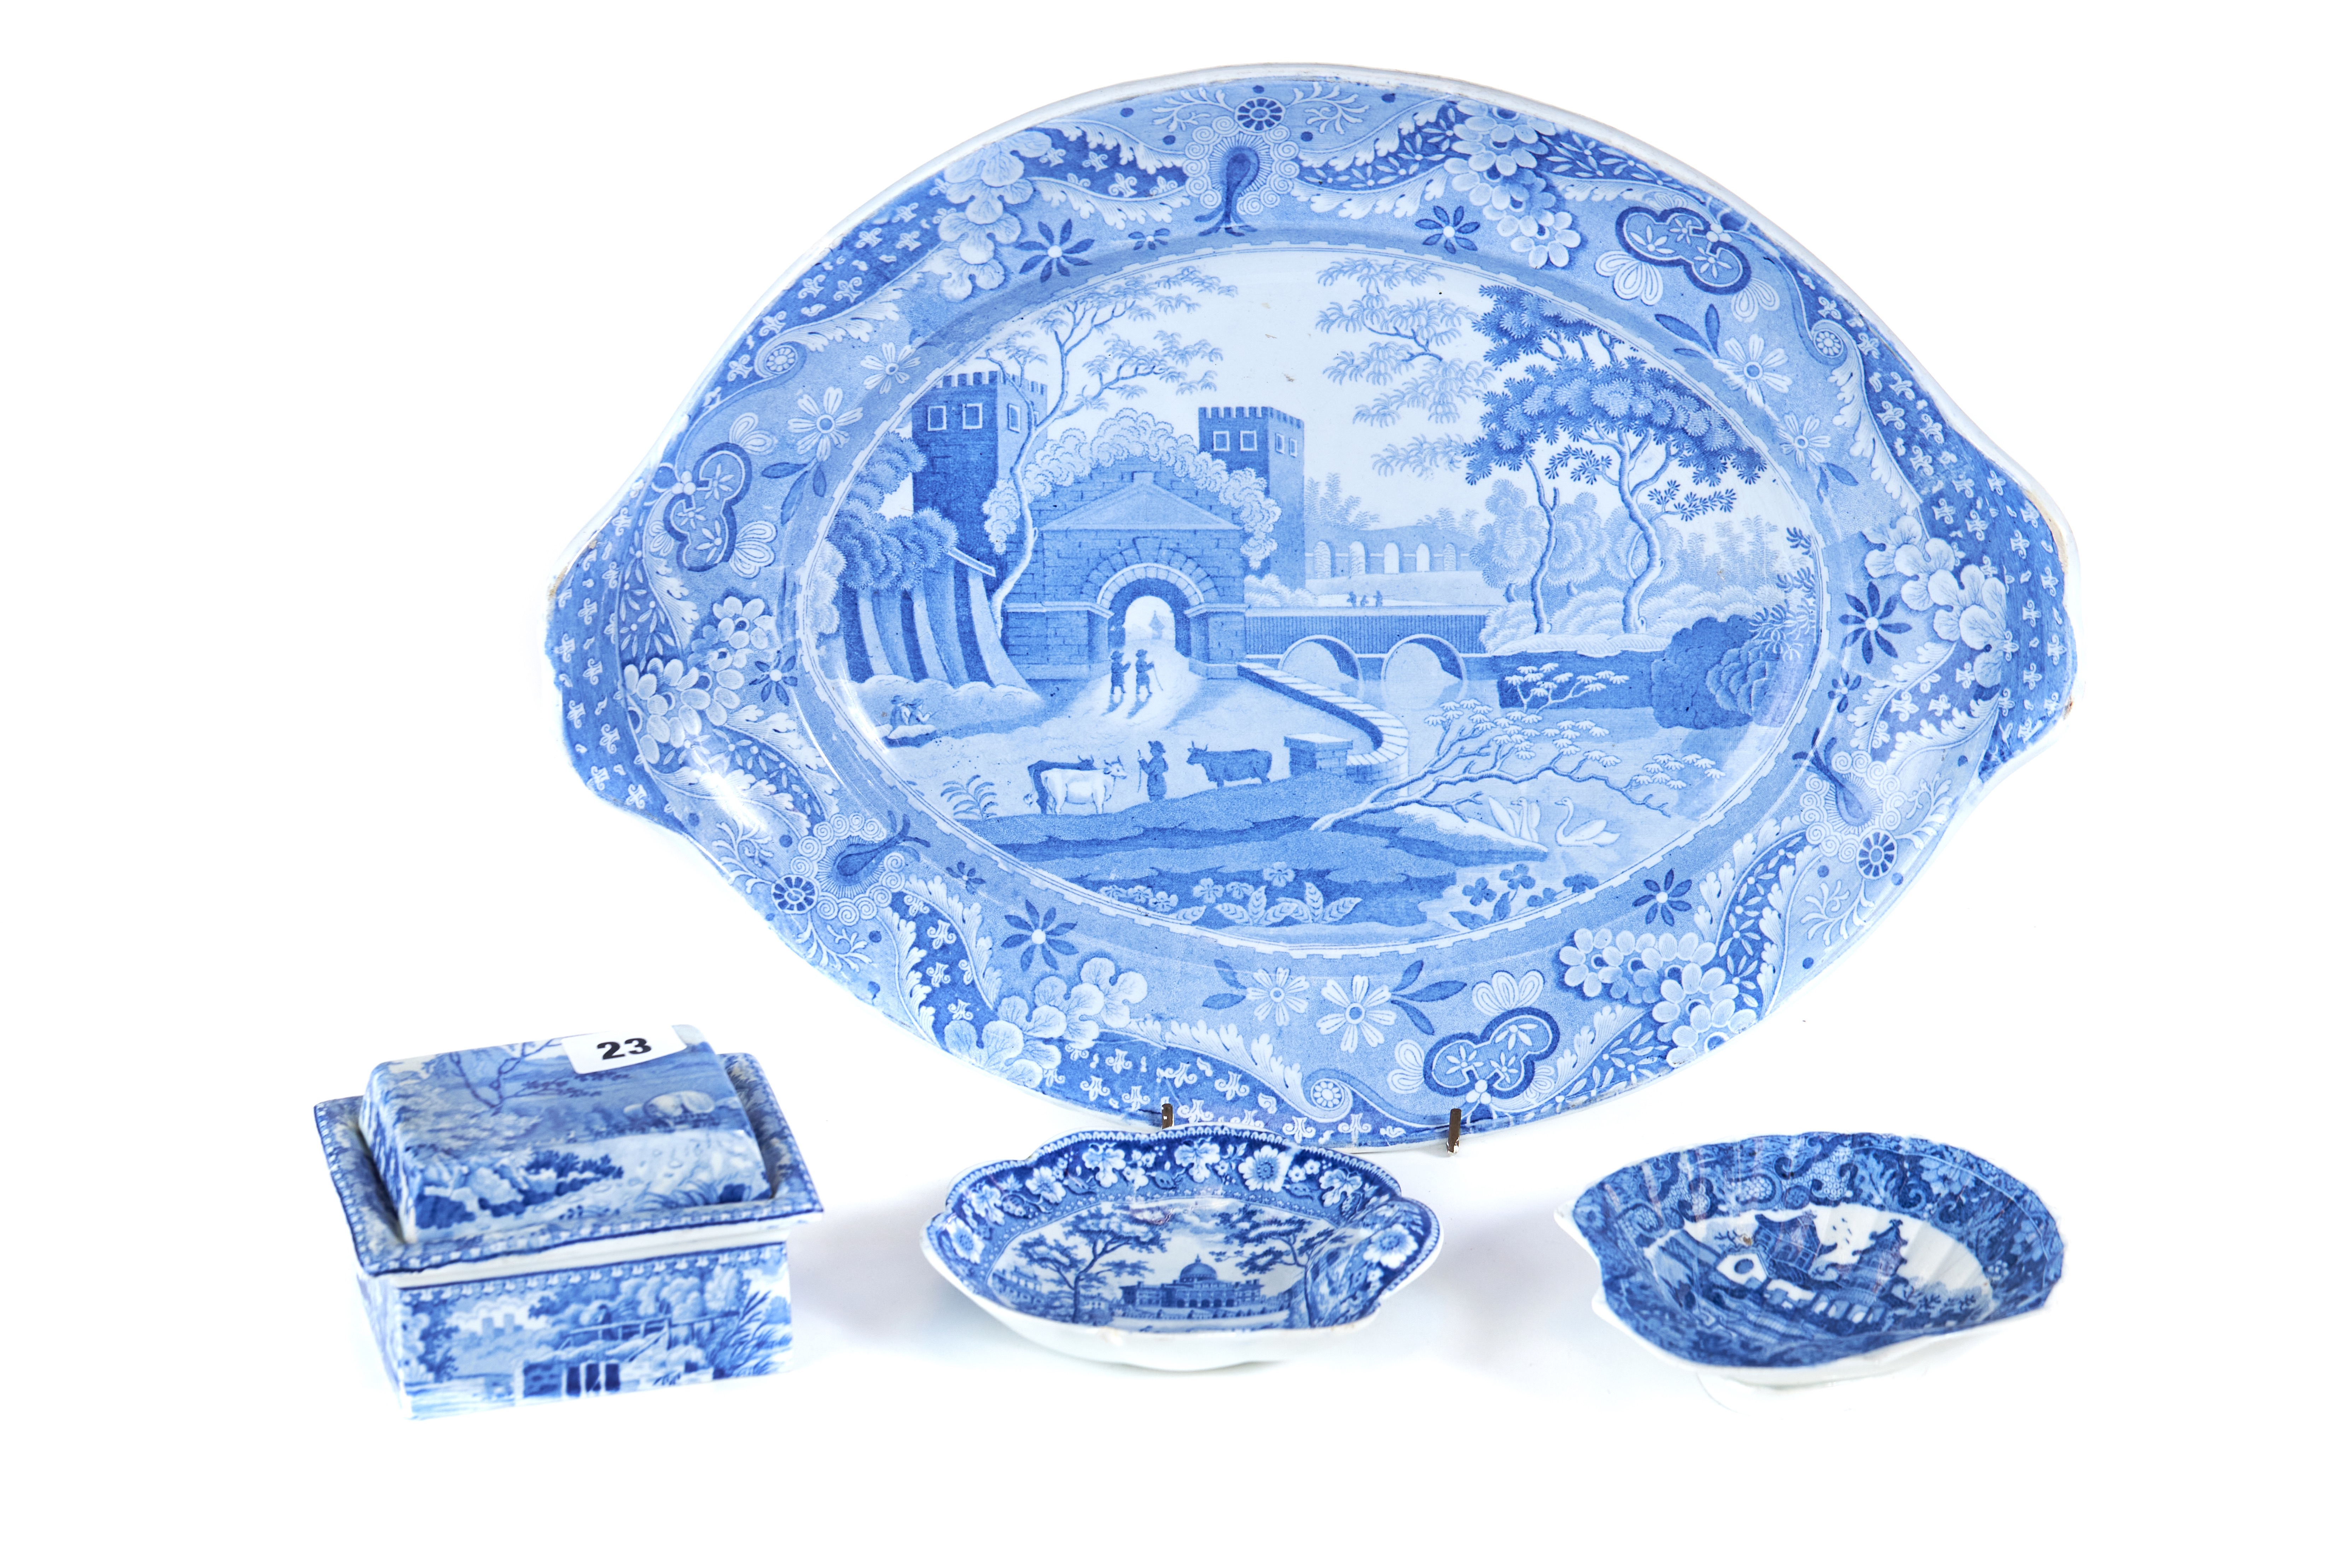 Lot 23 - A 19TH CENTURY RECTANGULAR BLUE AND WHITE TRANSFER DECORATED SOAP DISH, STRAINER AND COVER,